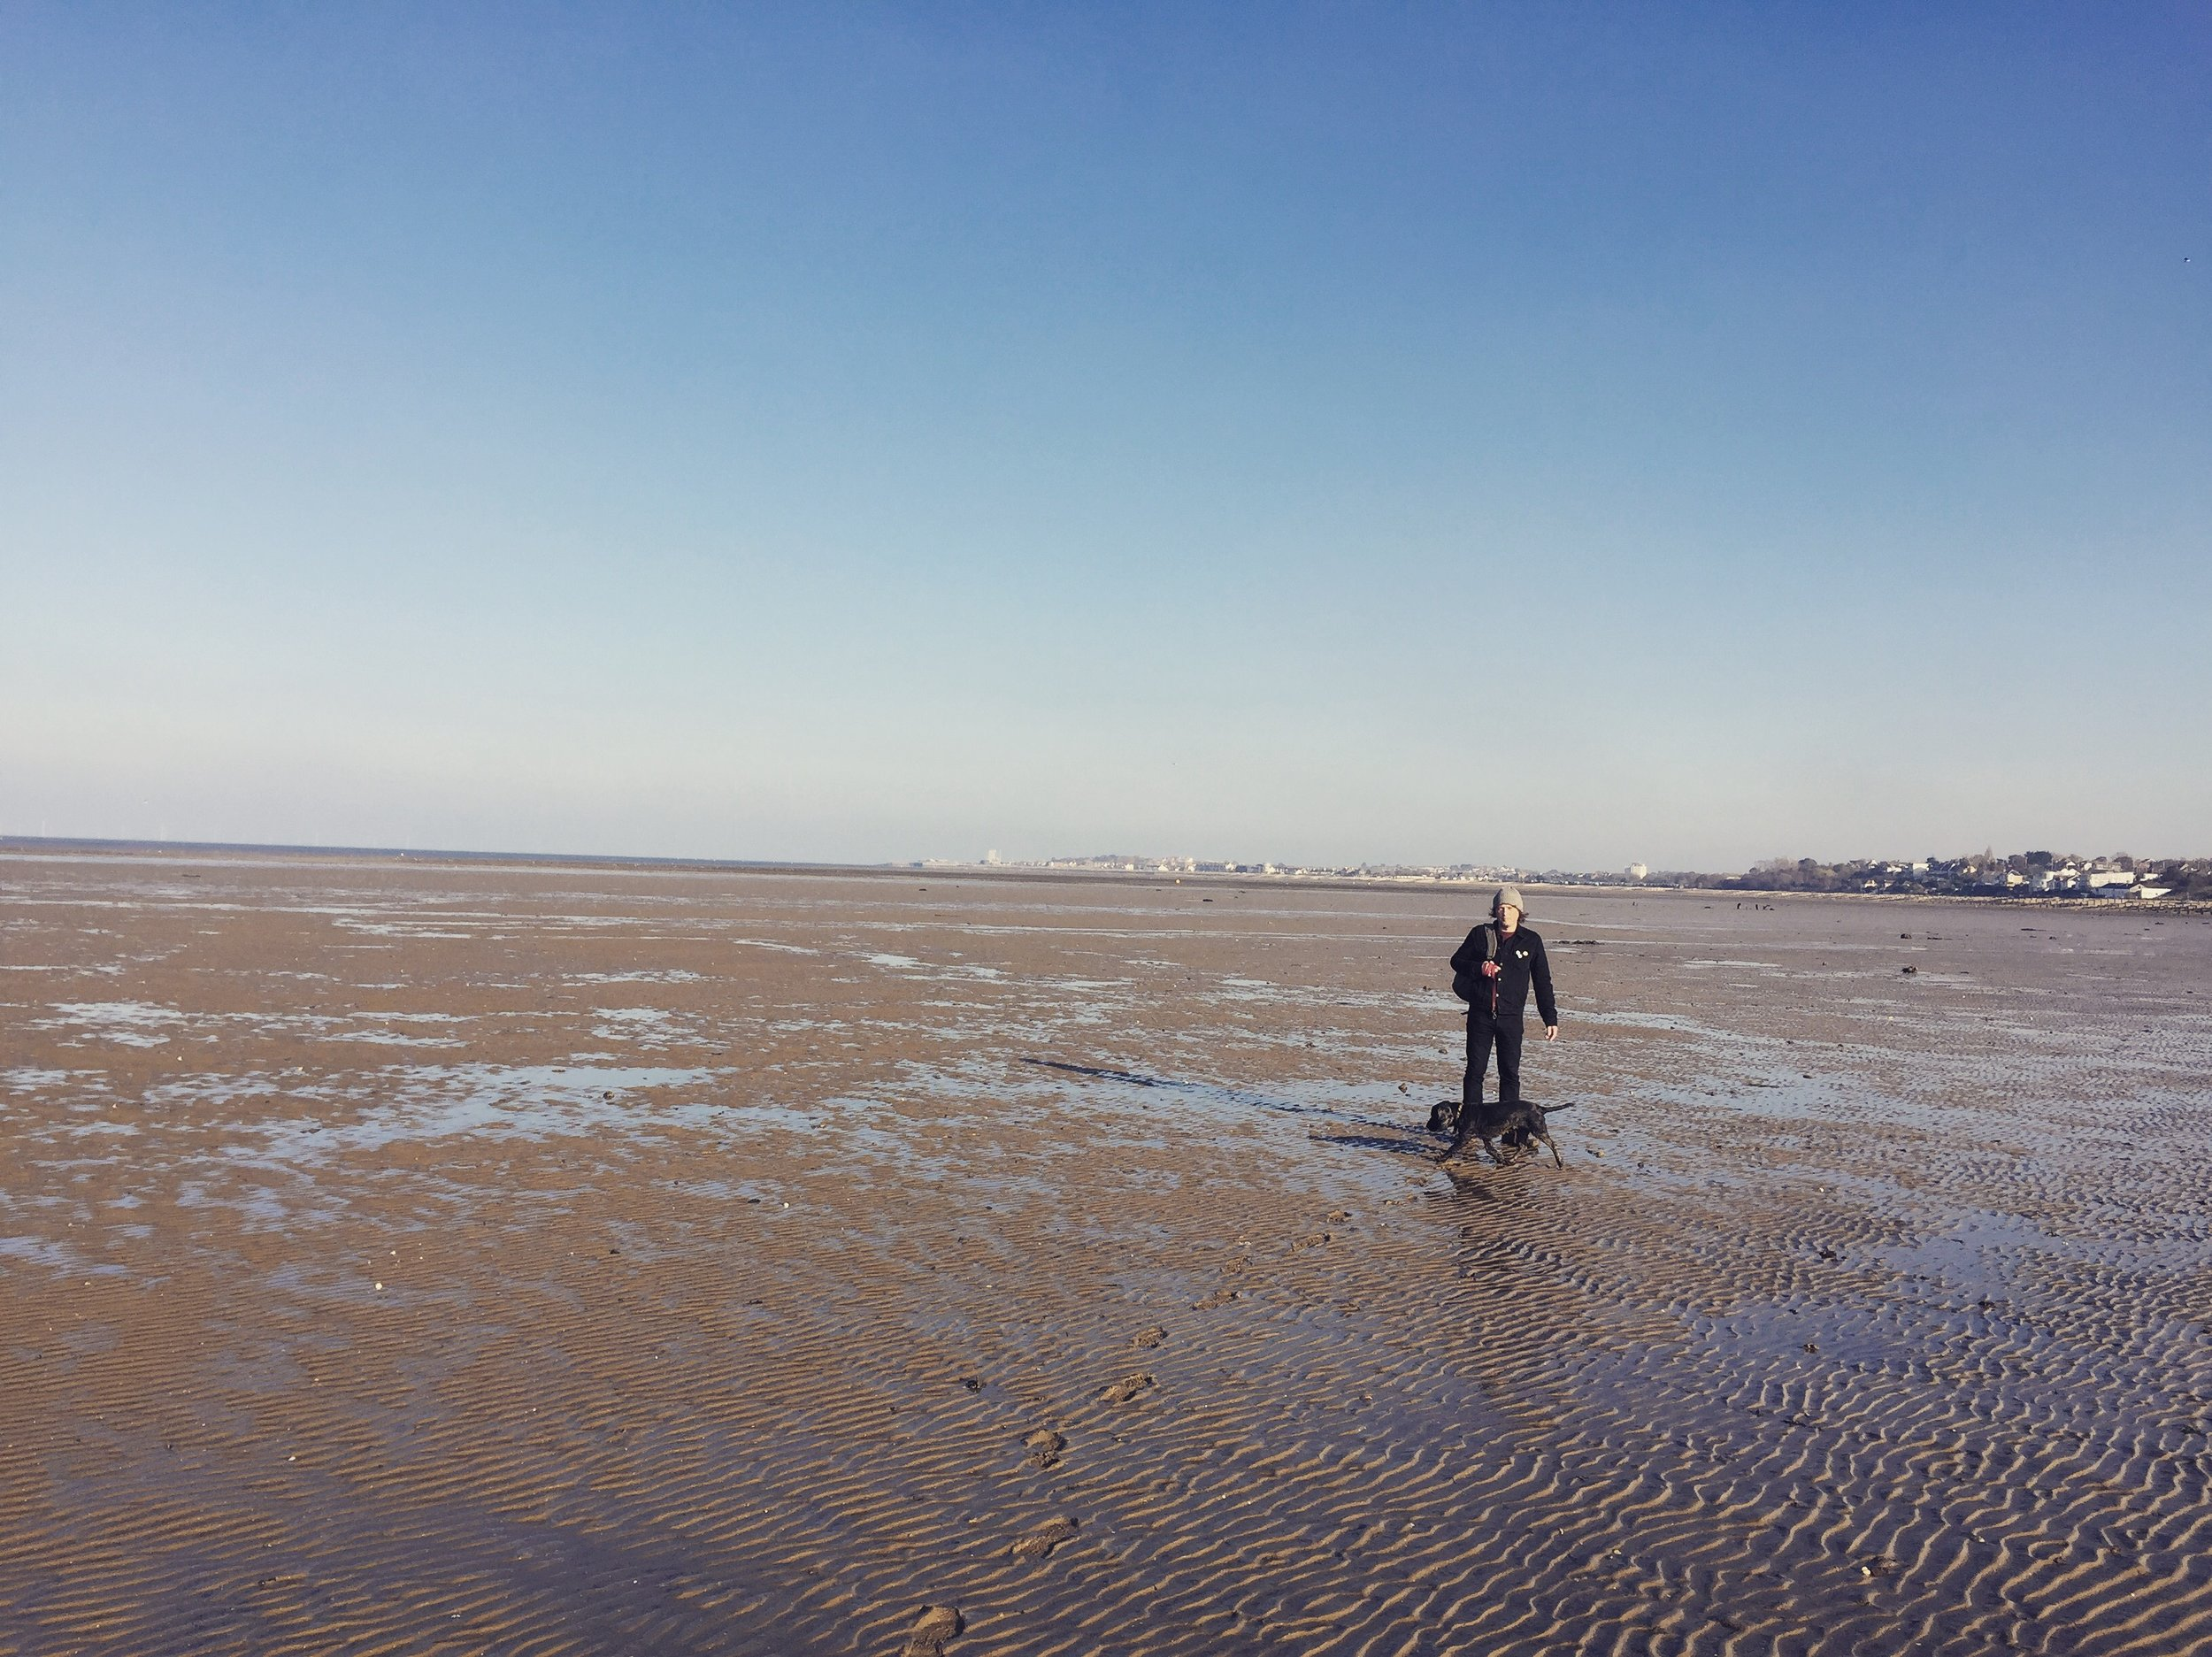 Gareth E. Rees, and Hendrix, on the mudflats at low tide, Thames Estuary, approaching Whitstable.